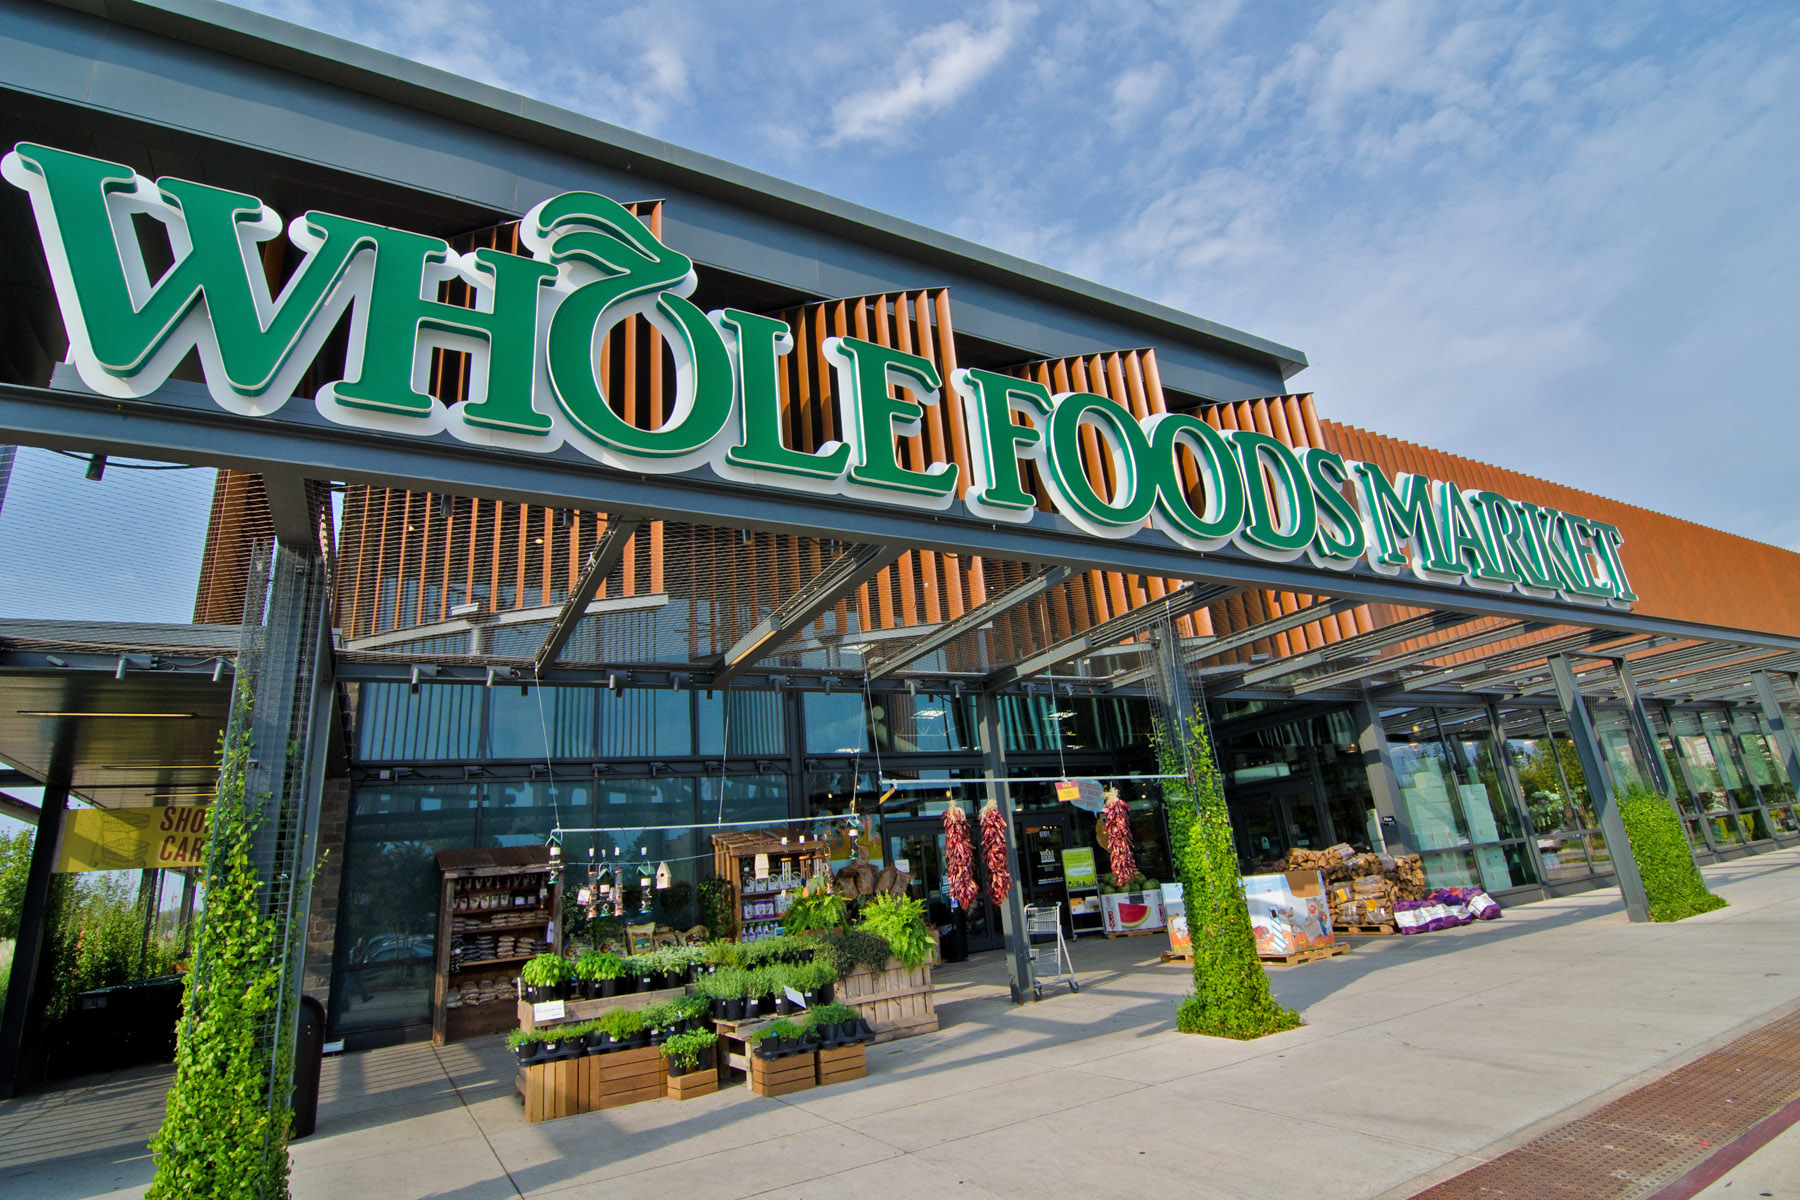 Whole Foods Market is not tied to WholeFoods Magazine.